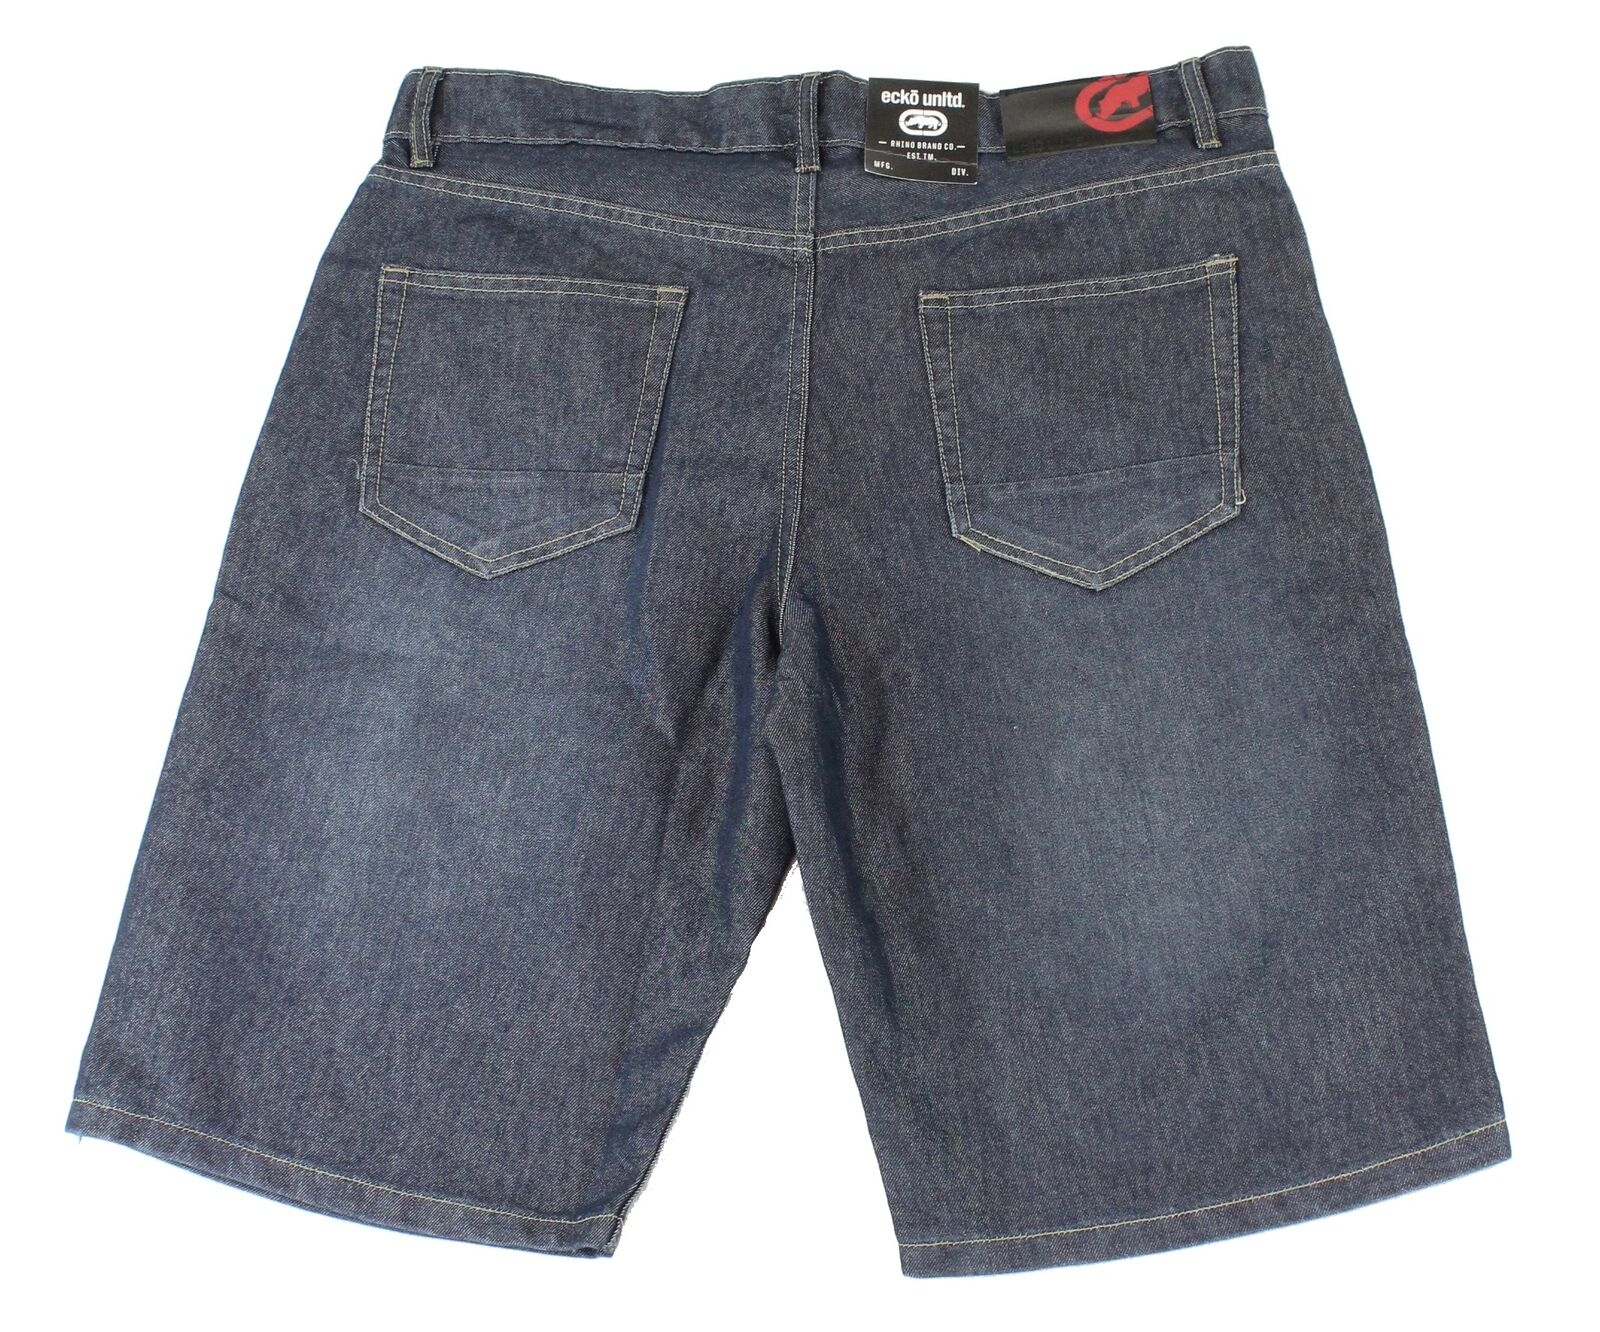 Ecko-Unltd-Mens-Shorts-Indigo-Blue-Size-36-Denim-759-Relaxed-Fit-48-106 thumbnail 2